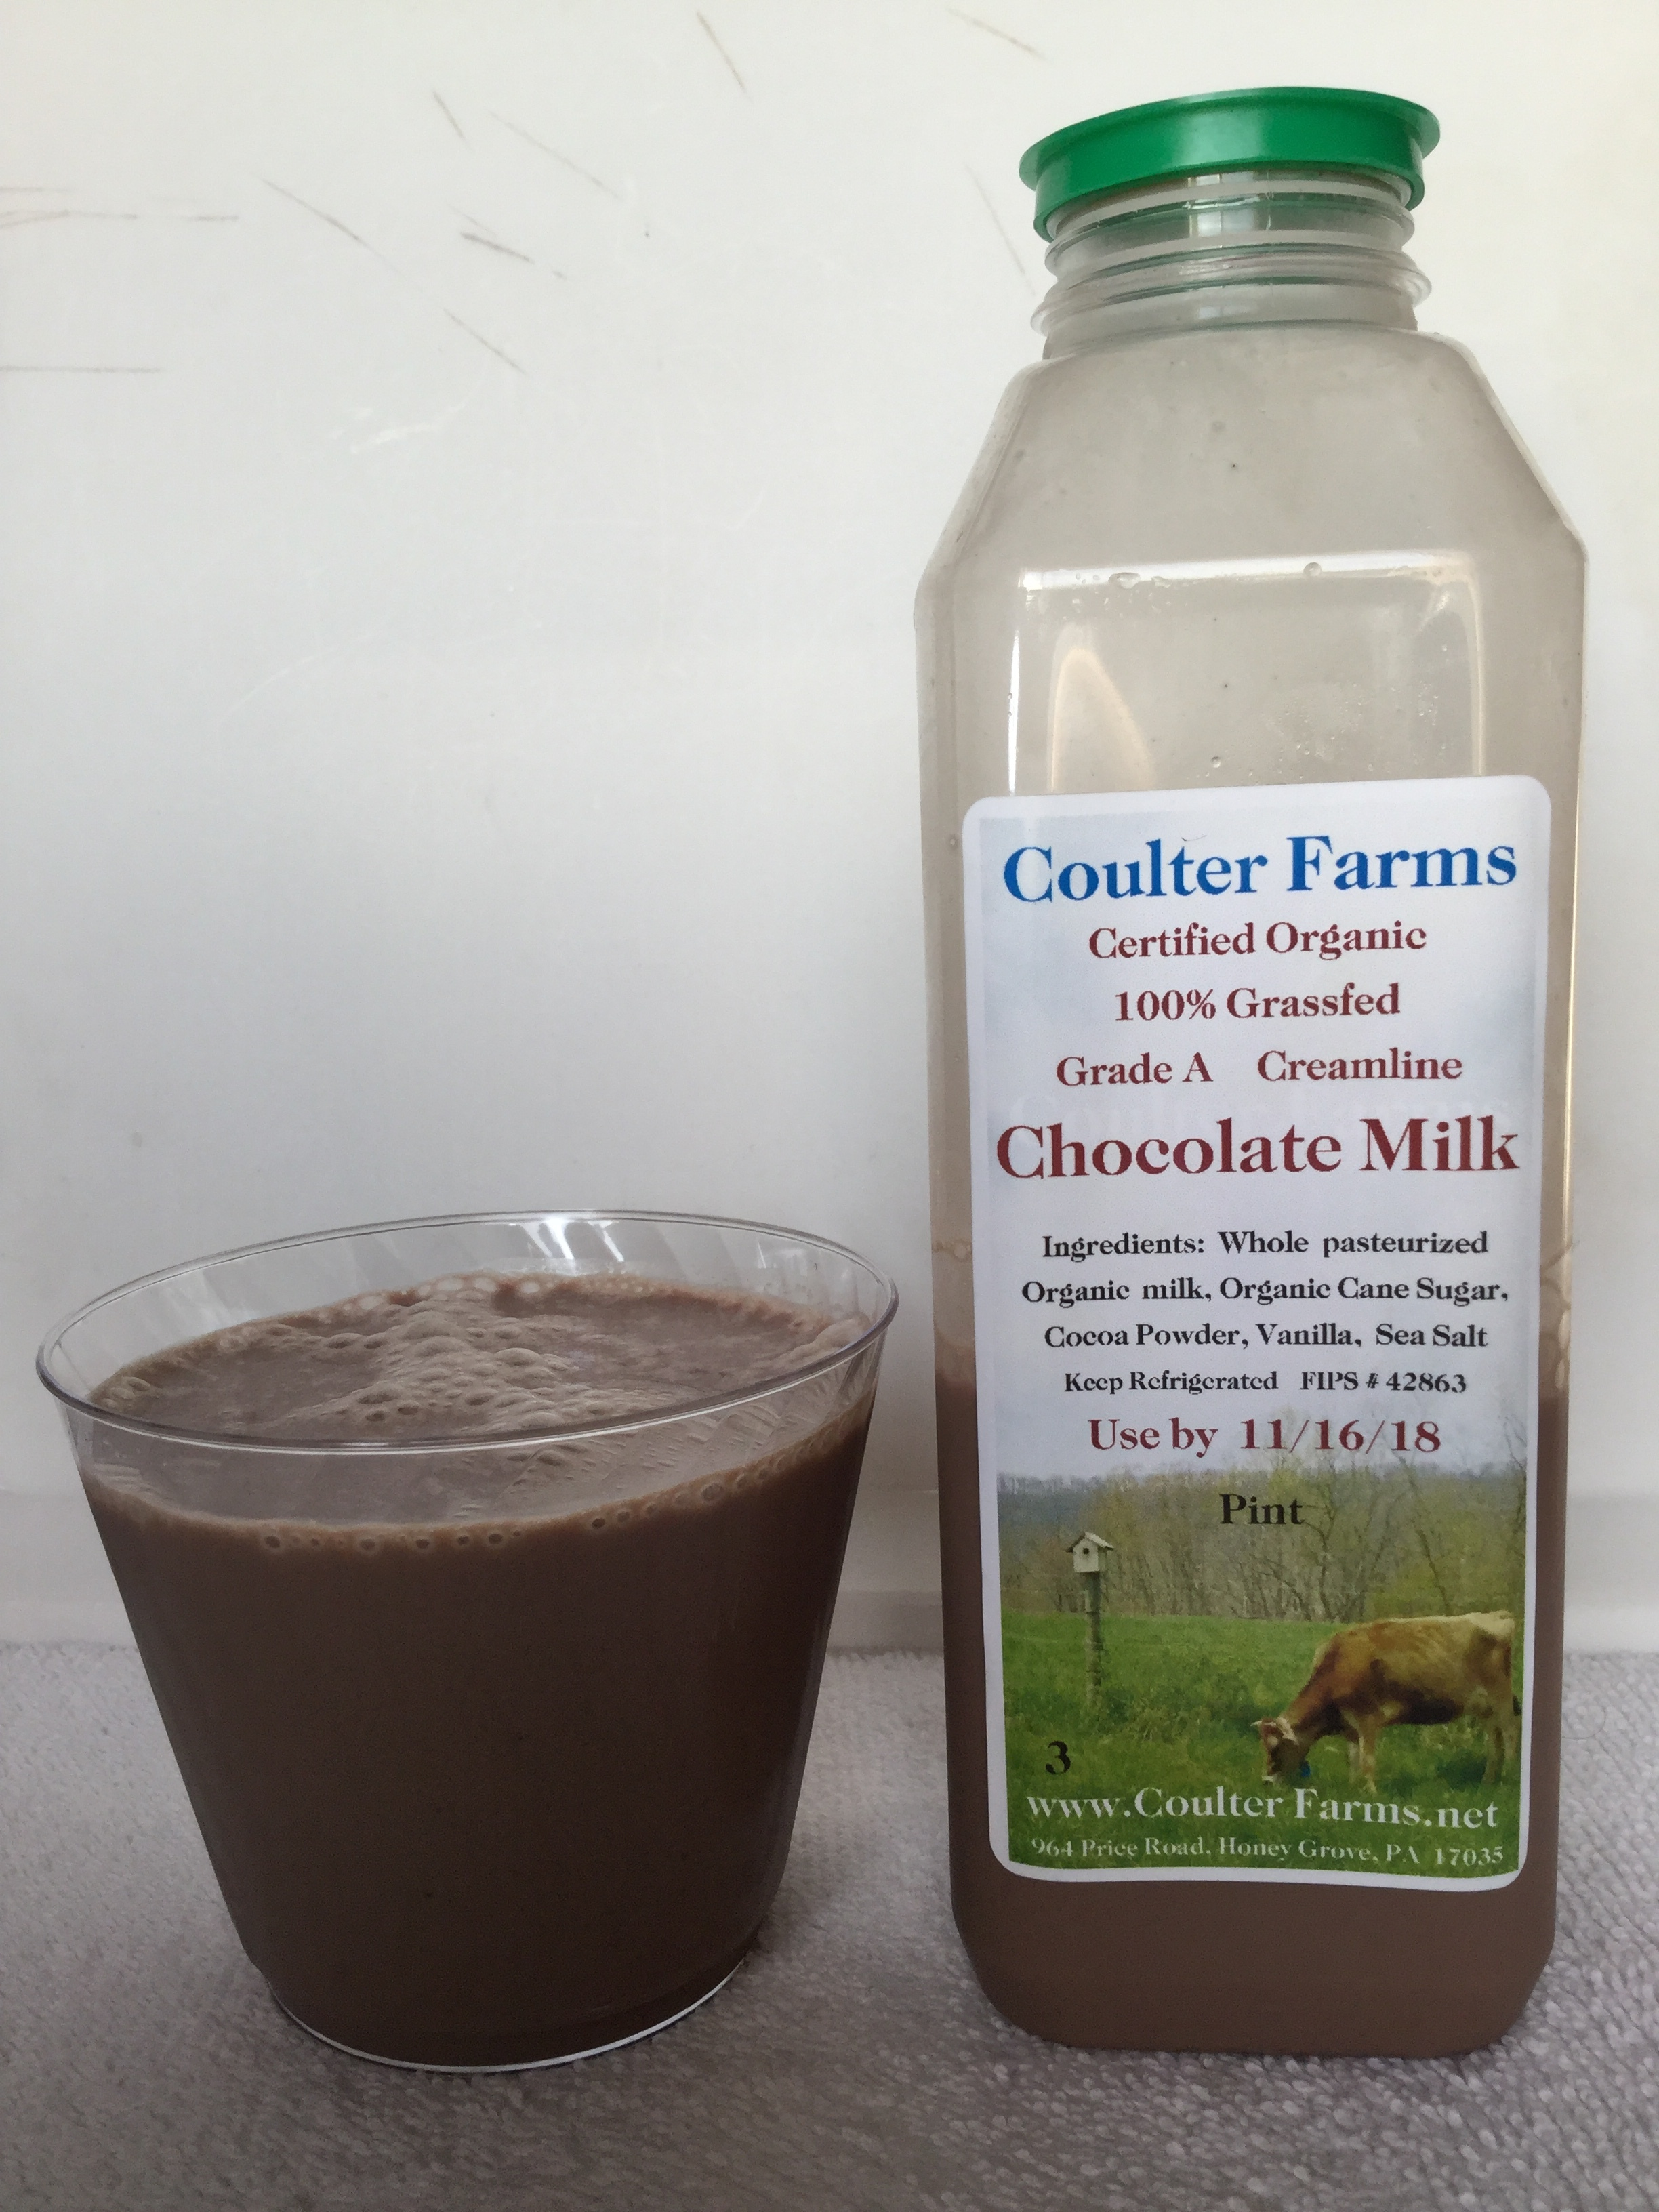 Coulter Farms Organic Chocolate Milk Cup